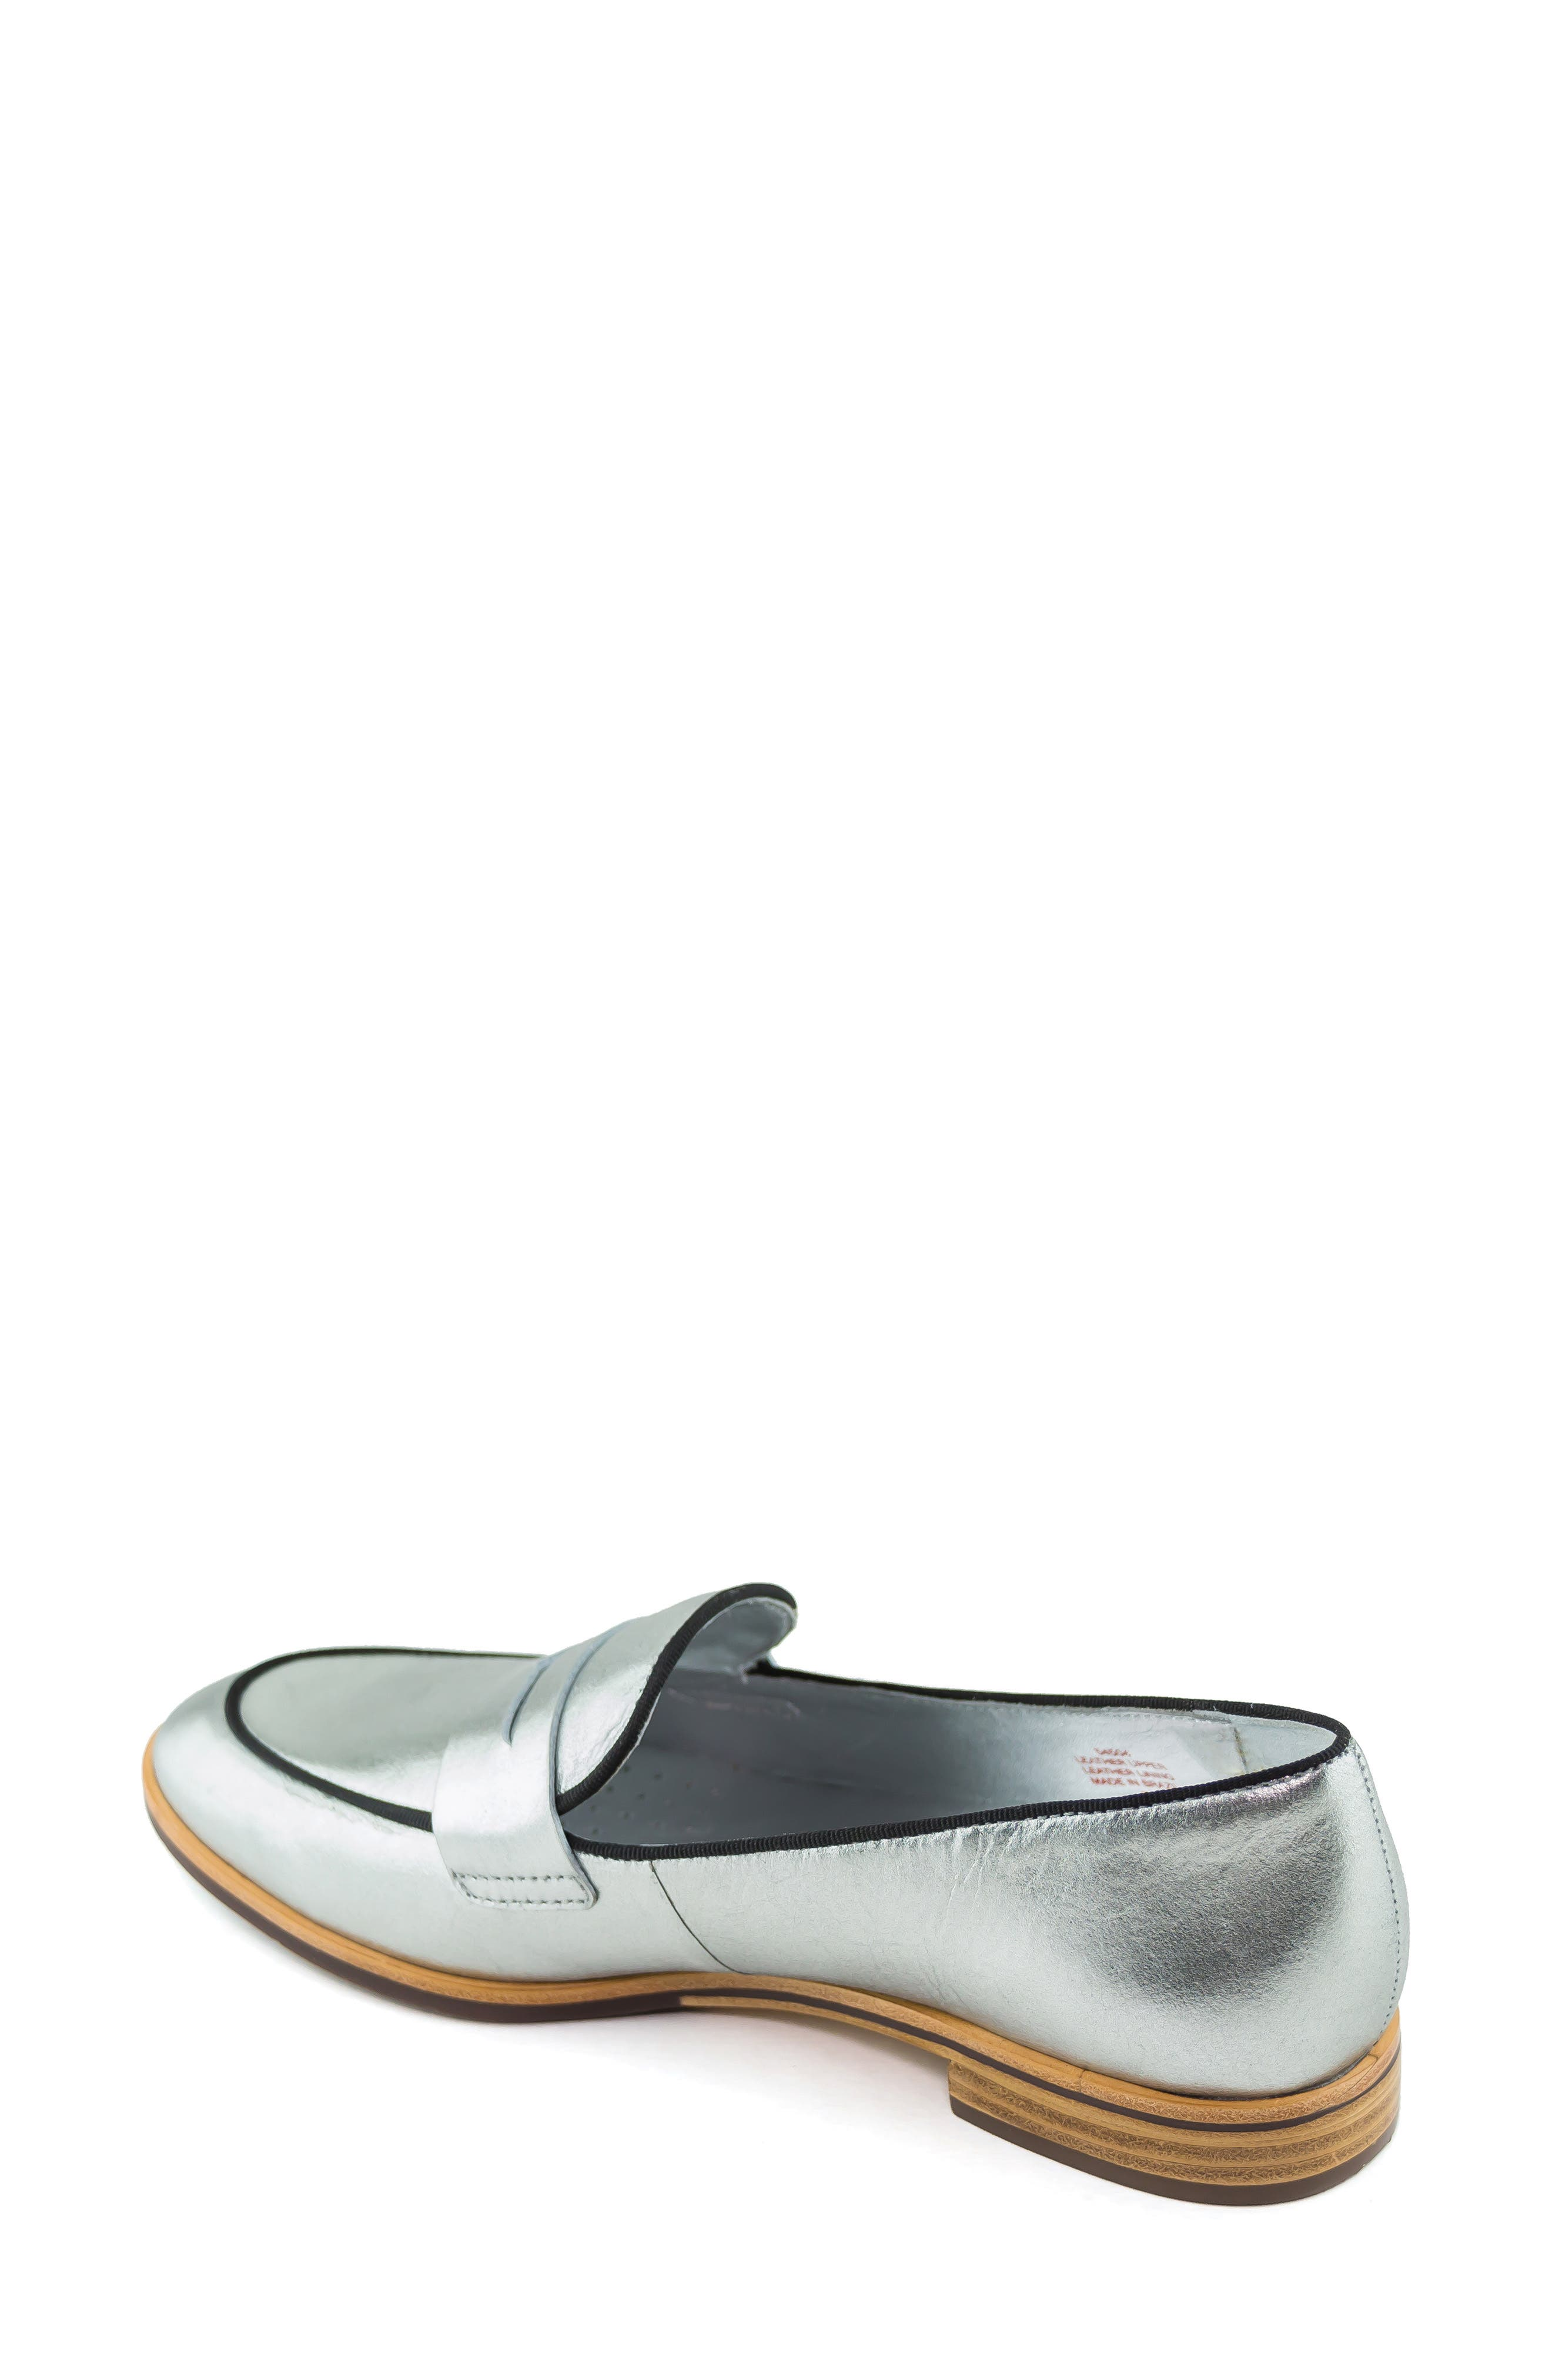 Bryant Park Loafer,                             Alternate thumbnail 2, color,                             GIPSY SILVER LEATHER